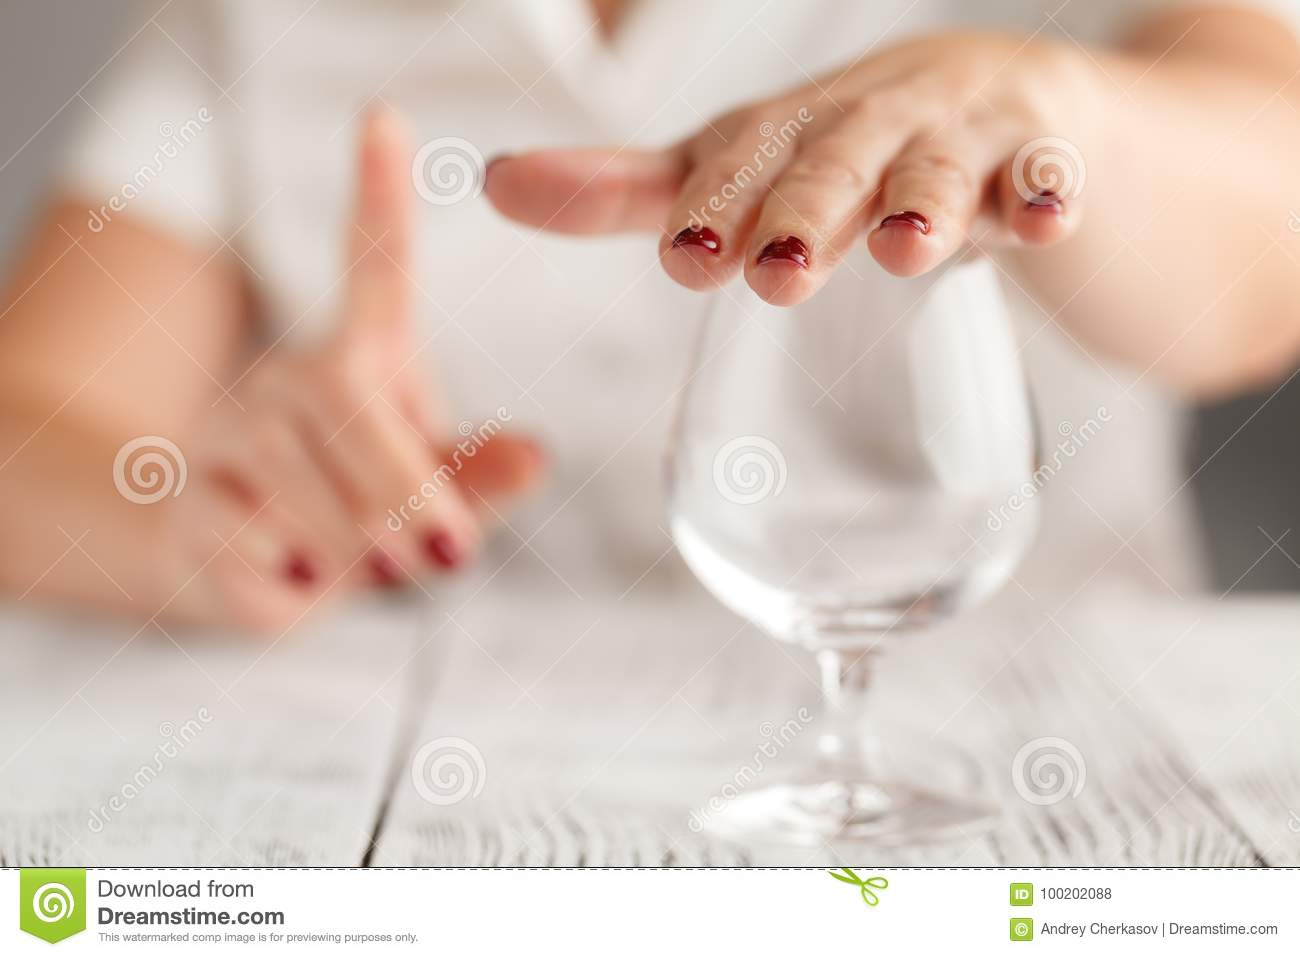 Cropped image of woman showing stop gesture and refusing to drink